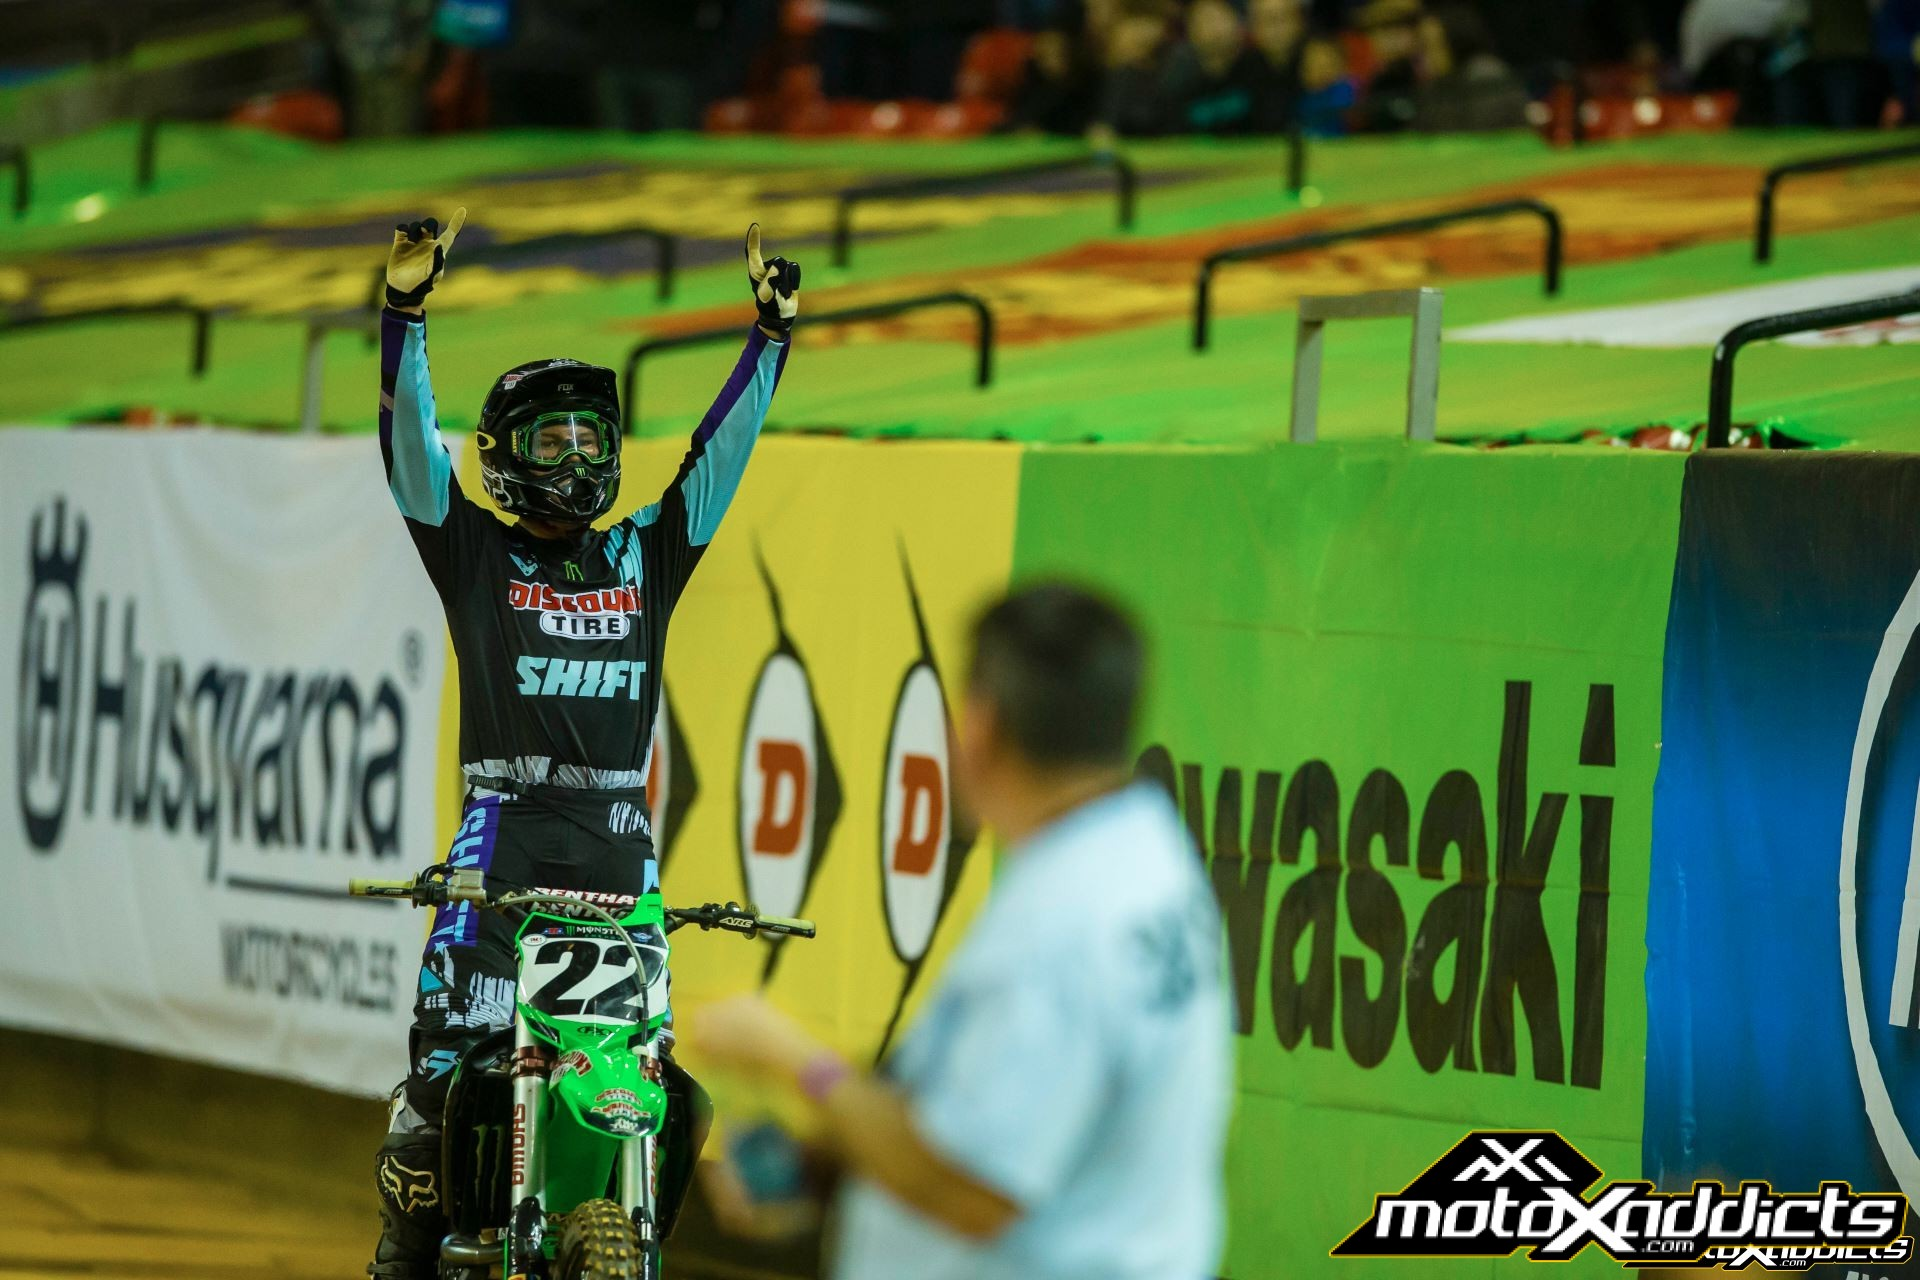 Chad Reed's last win came at the 2015 Atlanta SX. With that win, he became the second oldest rider to win a premier class main event. Photo by: Hoppenworld